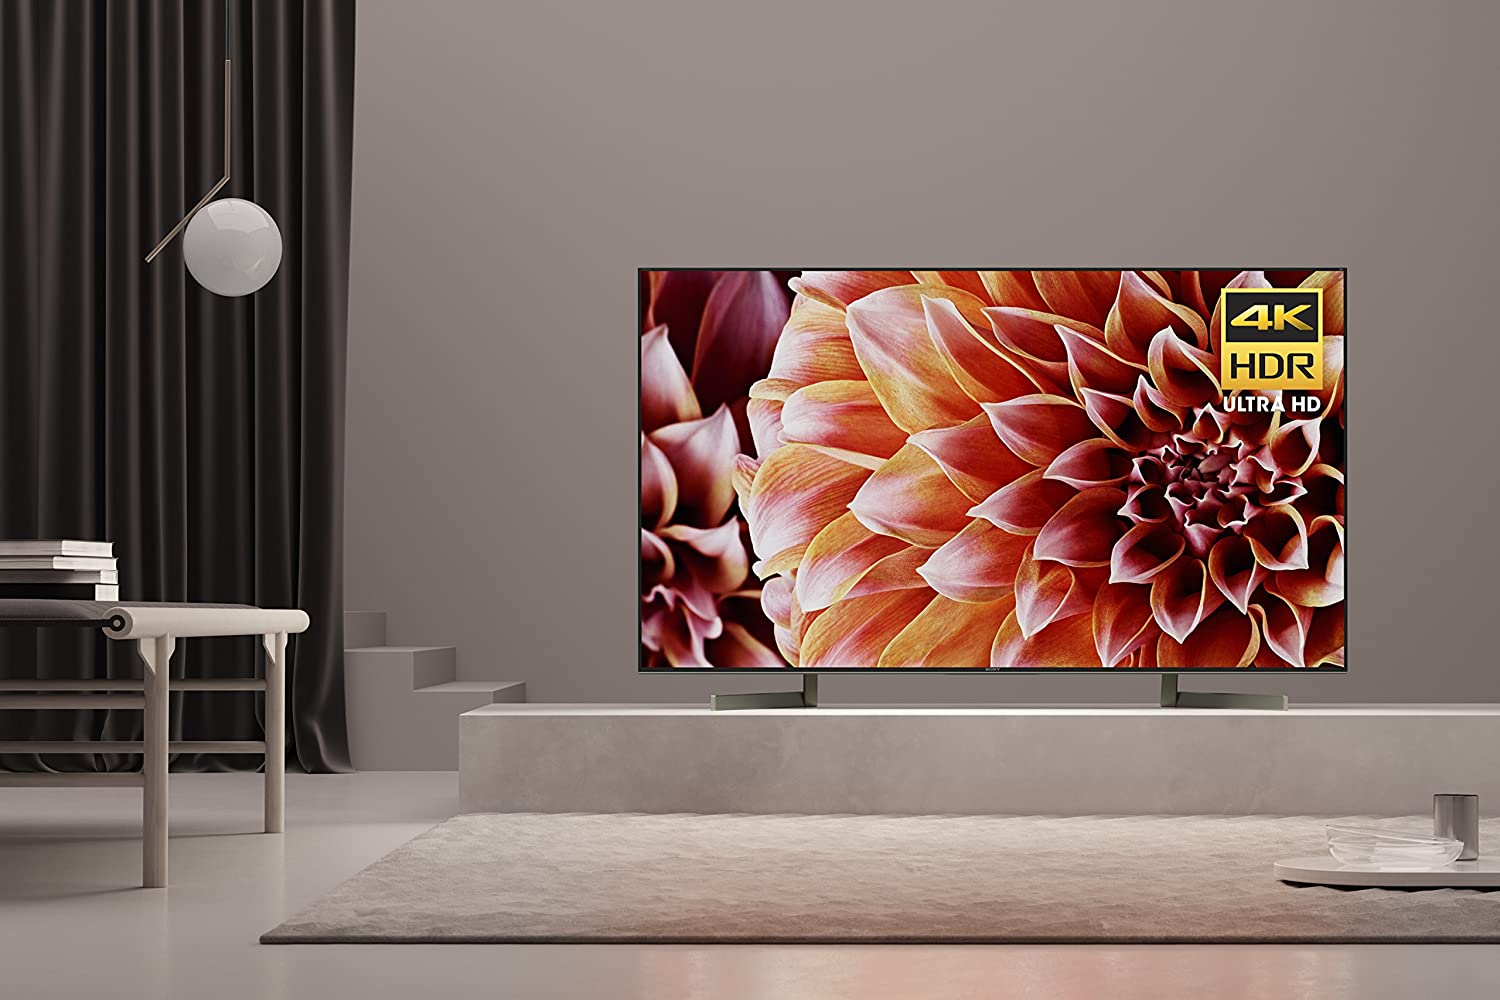 Best 65-Inch TV Reviews 2